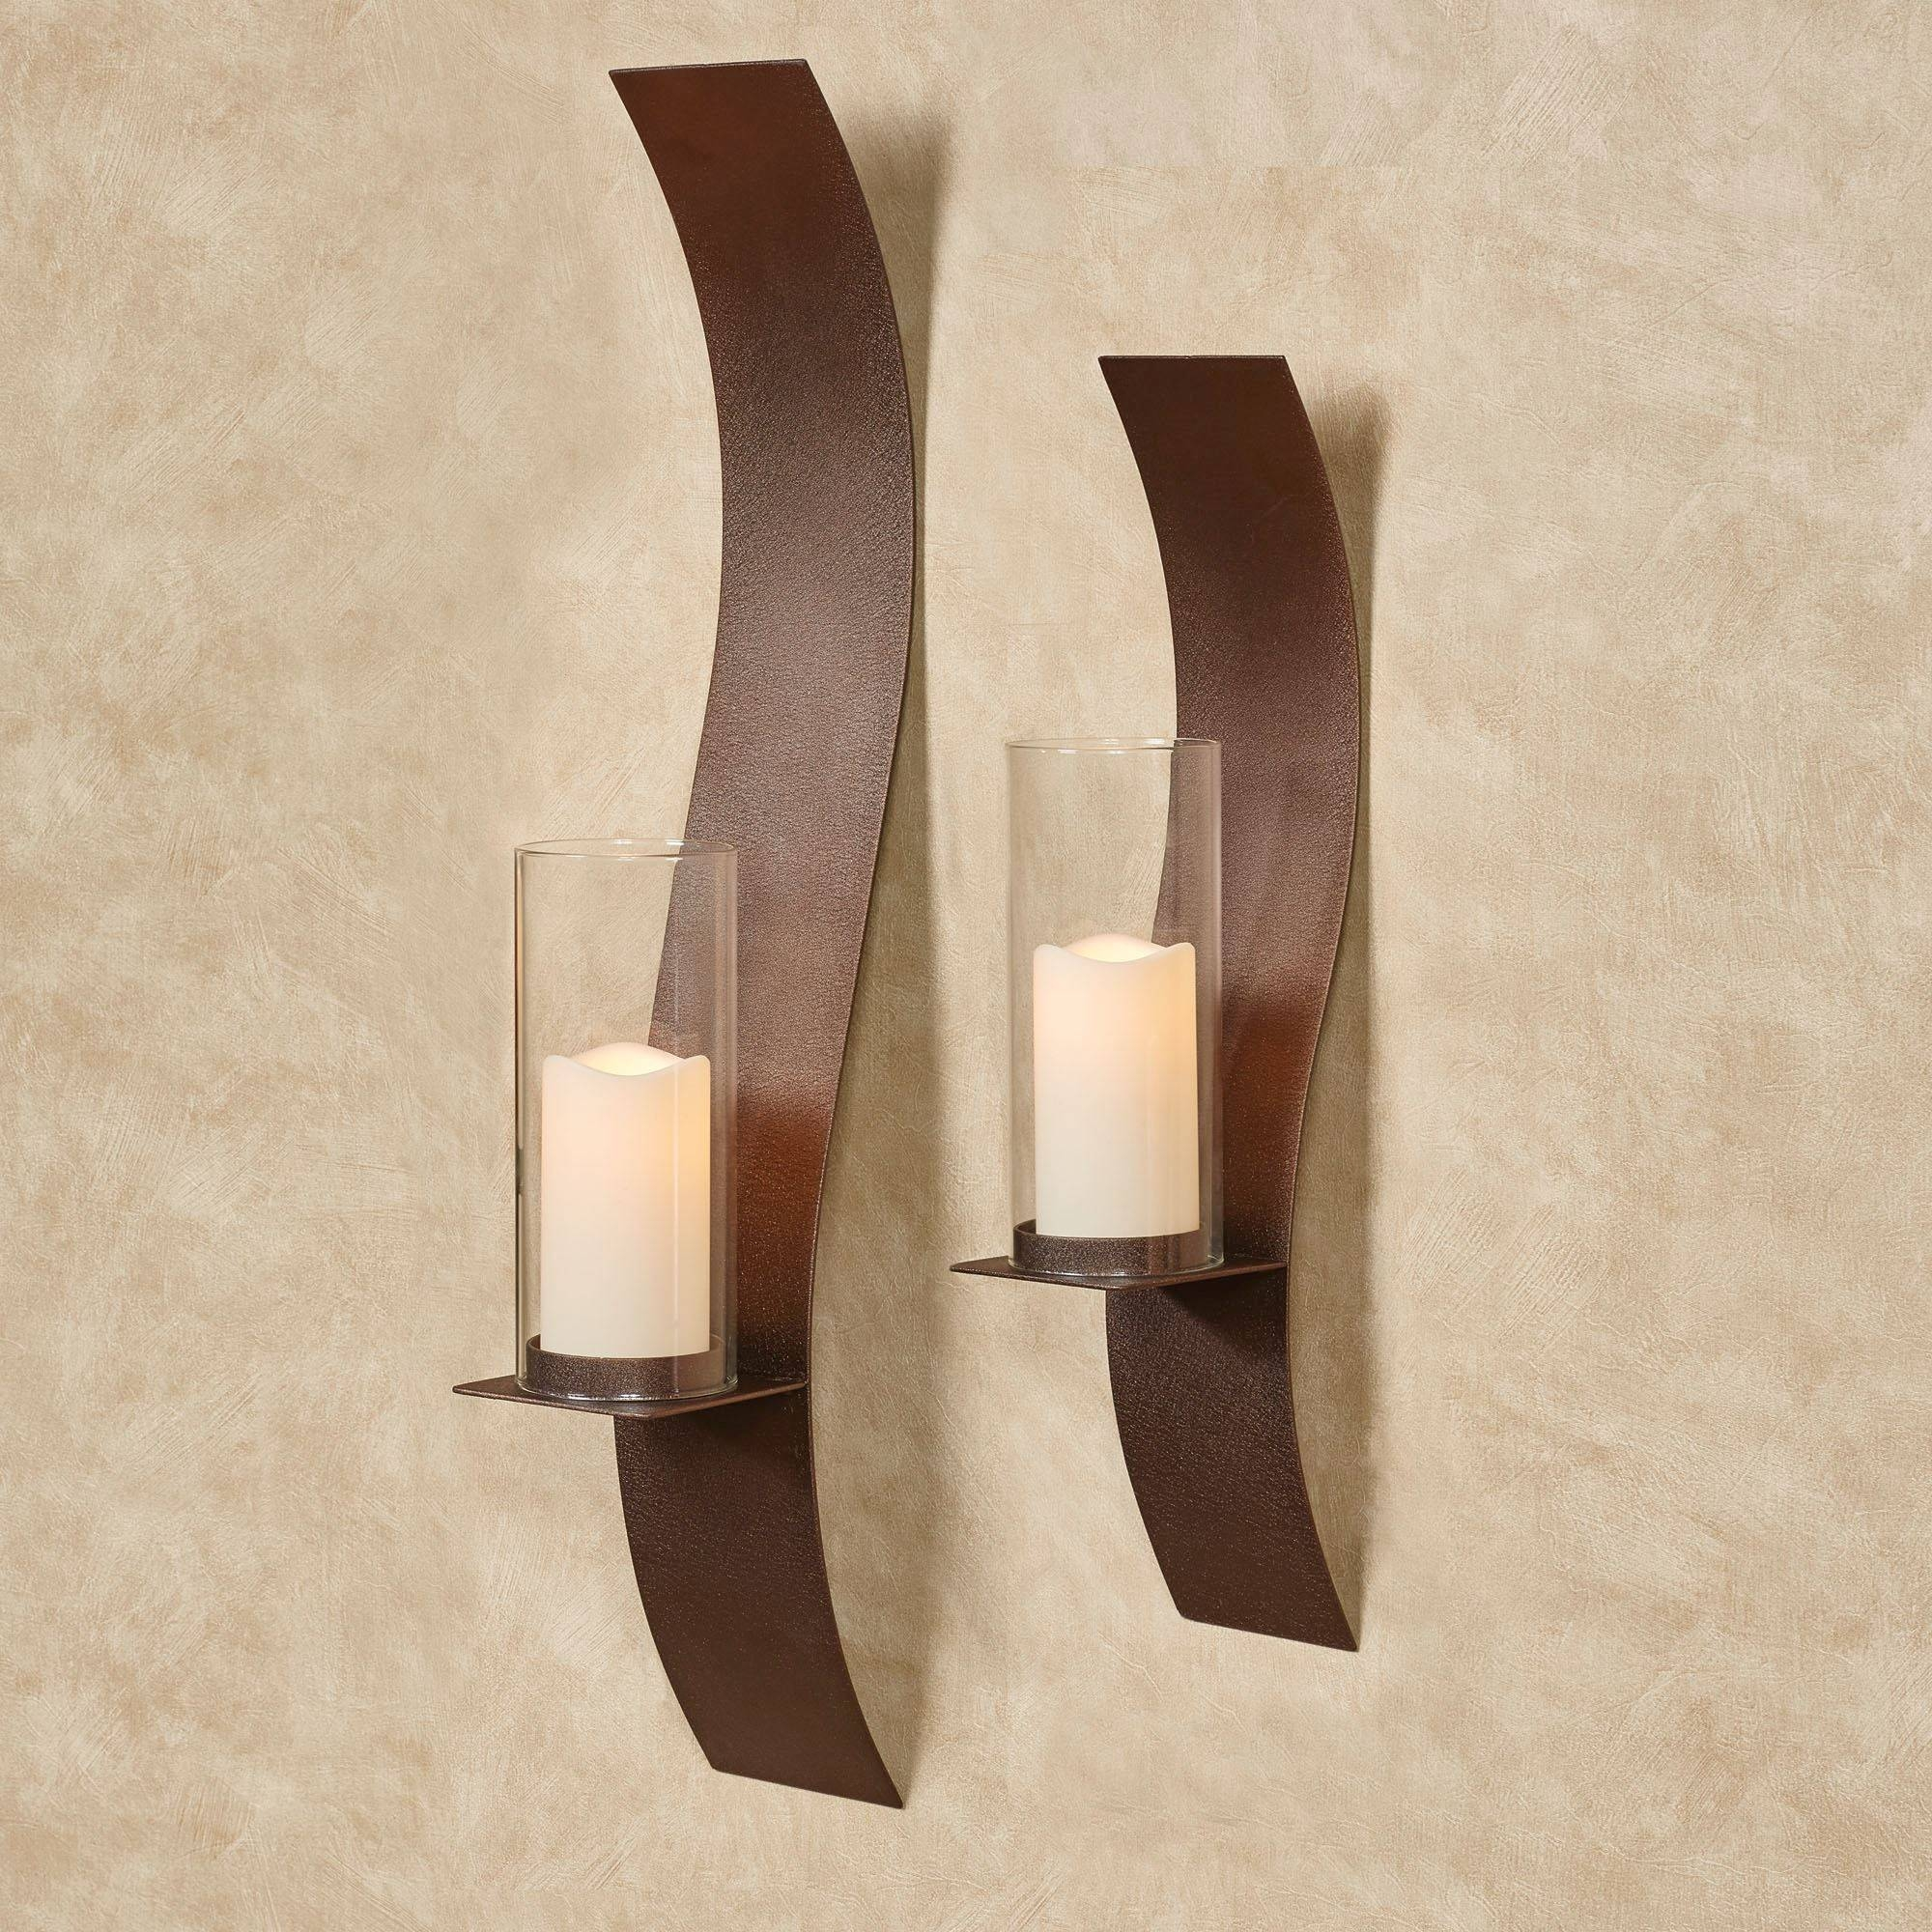 Large Wall Sconces And Candleholders | Touch Of Class In Most Recent Metal Wall Art With Candle Holders (View 12 of 20)